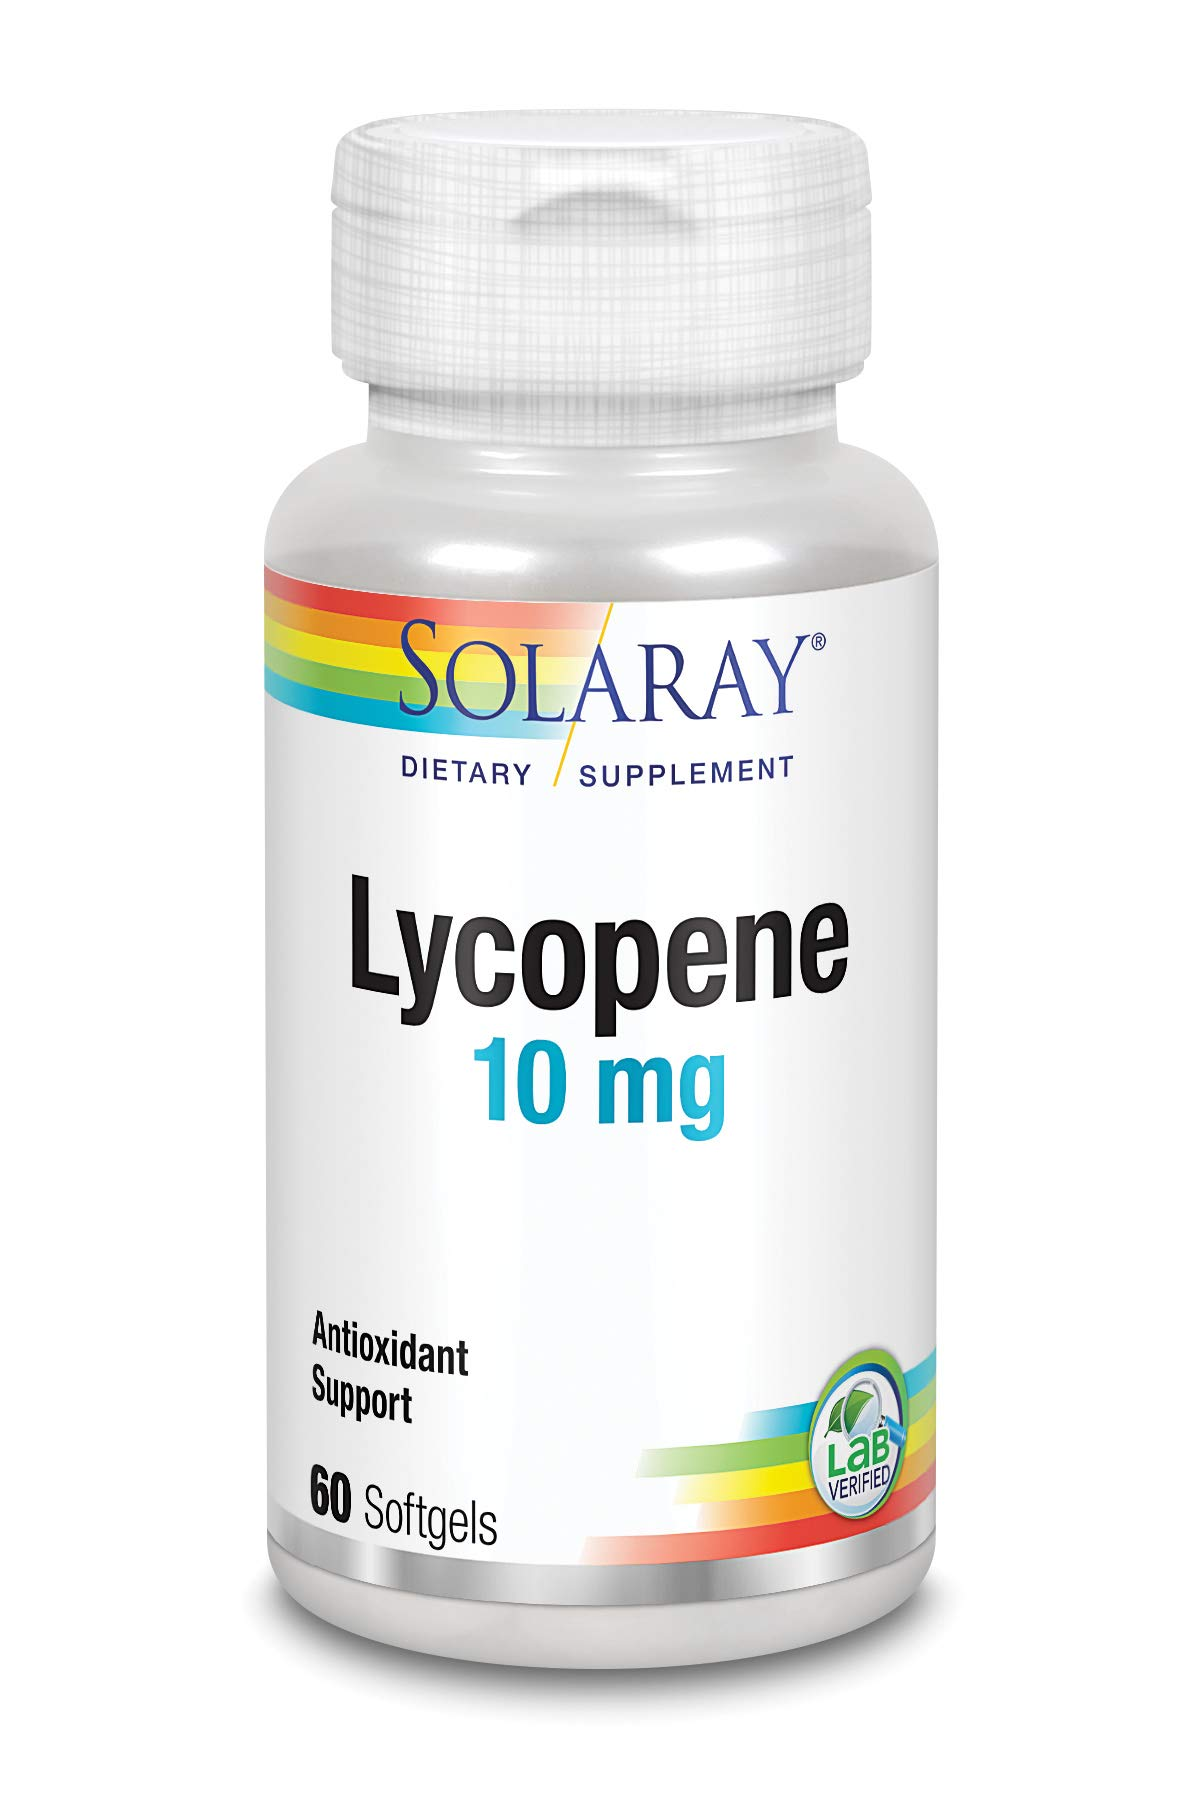 Solaray Lycopene Supplement, 10 mg, 60 Count by Solaray